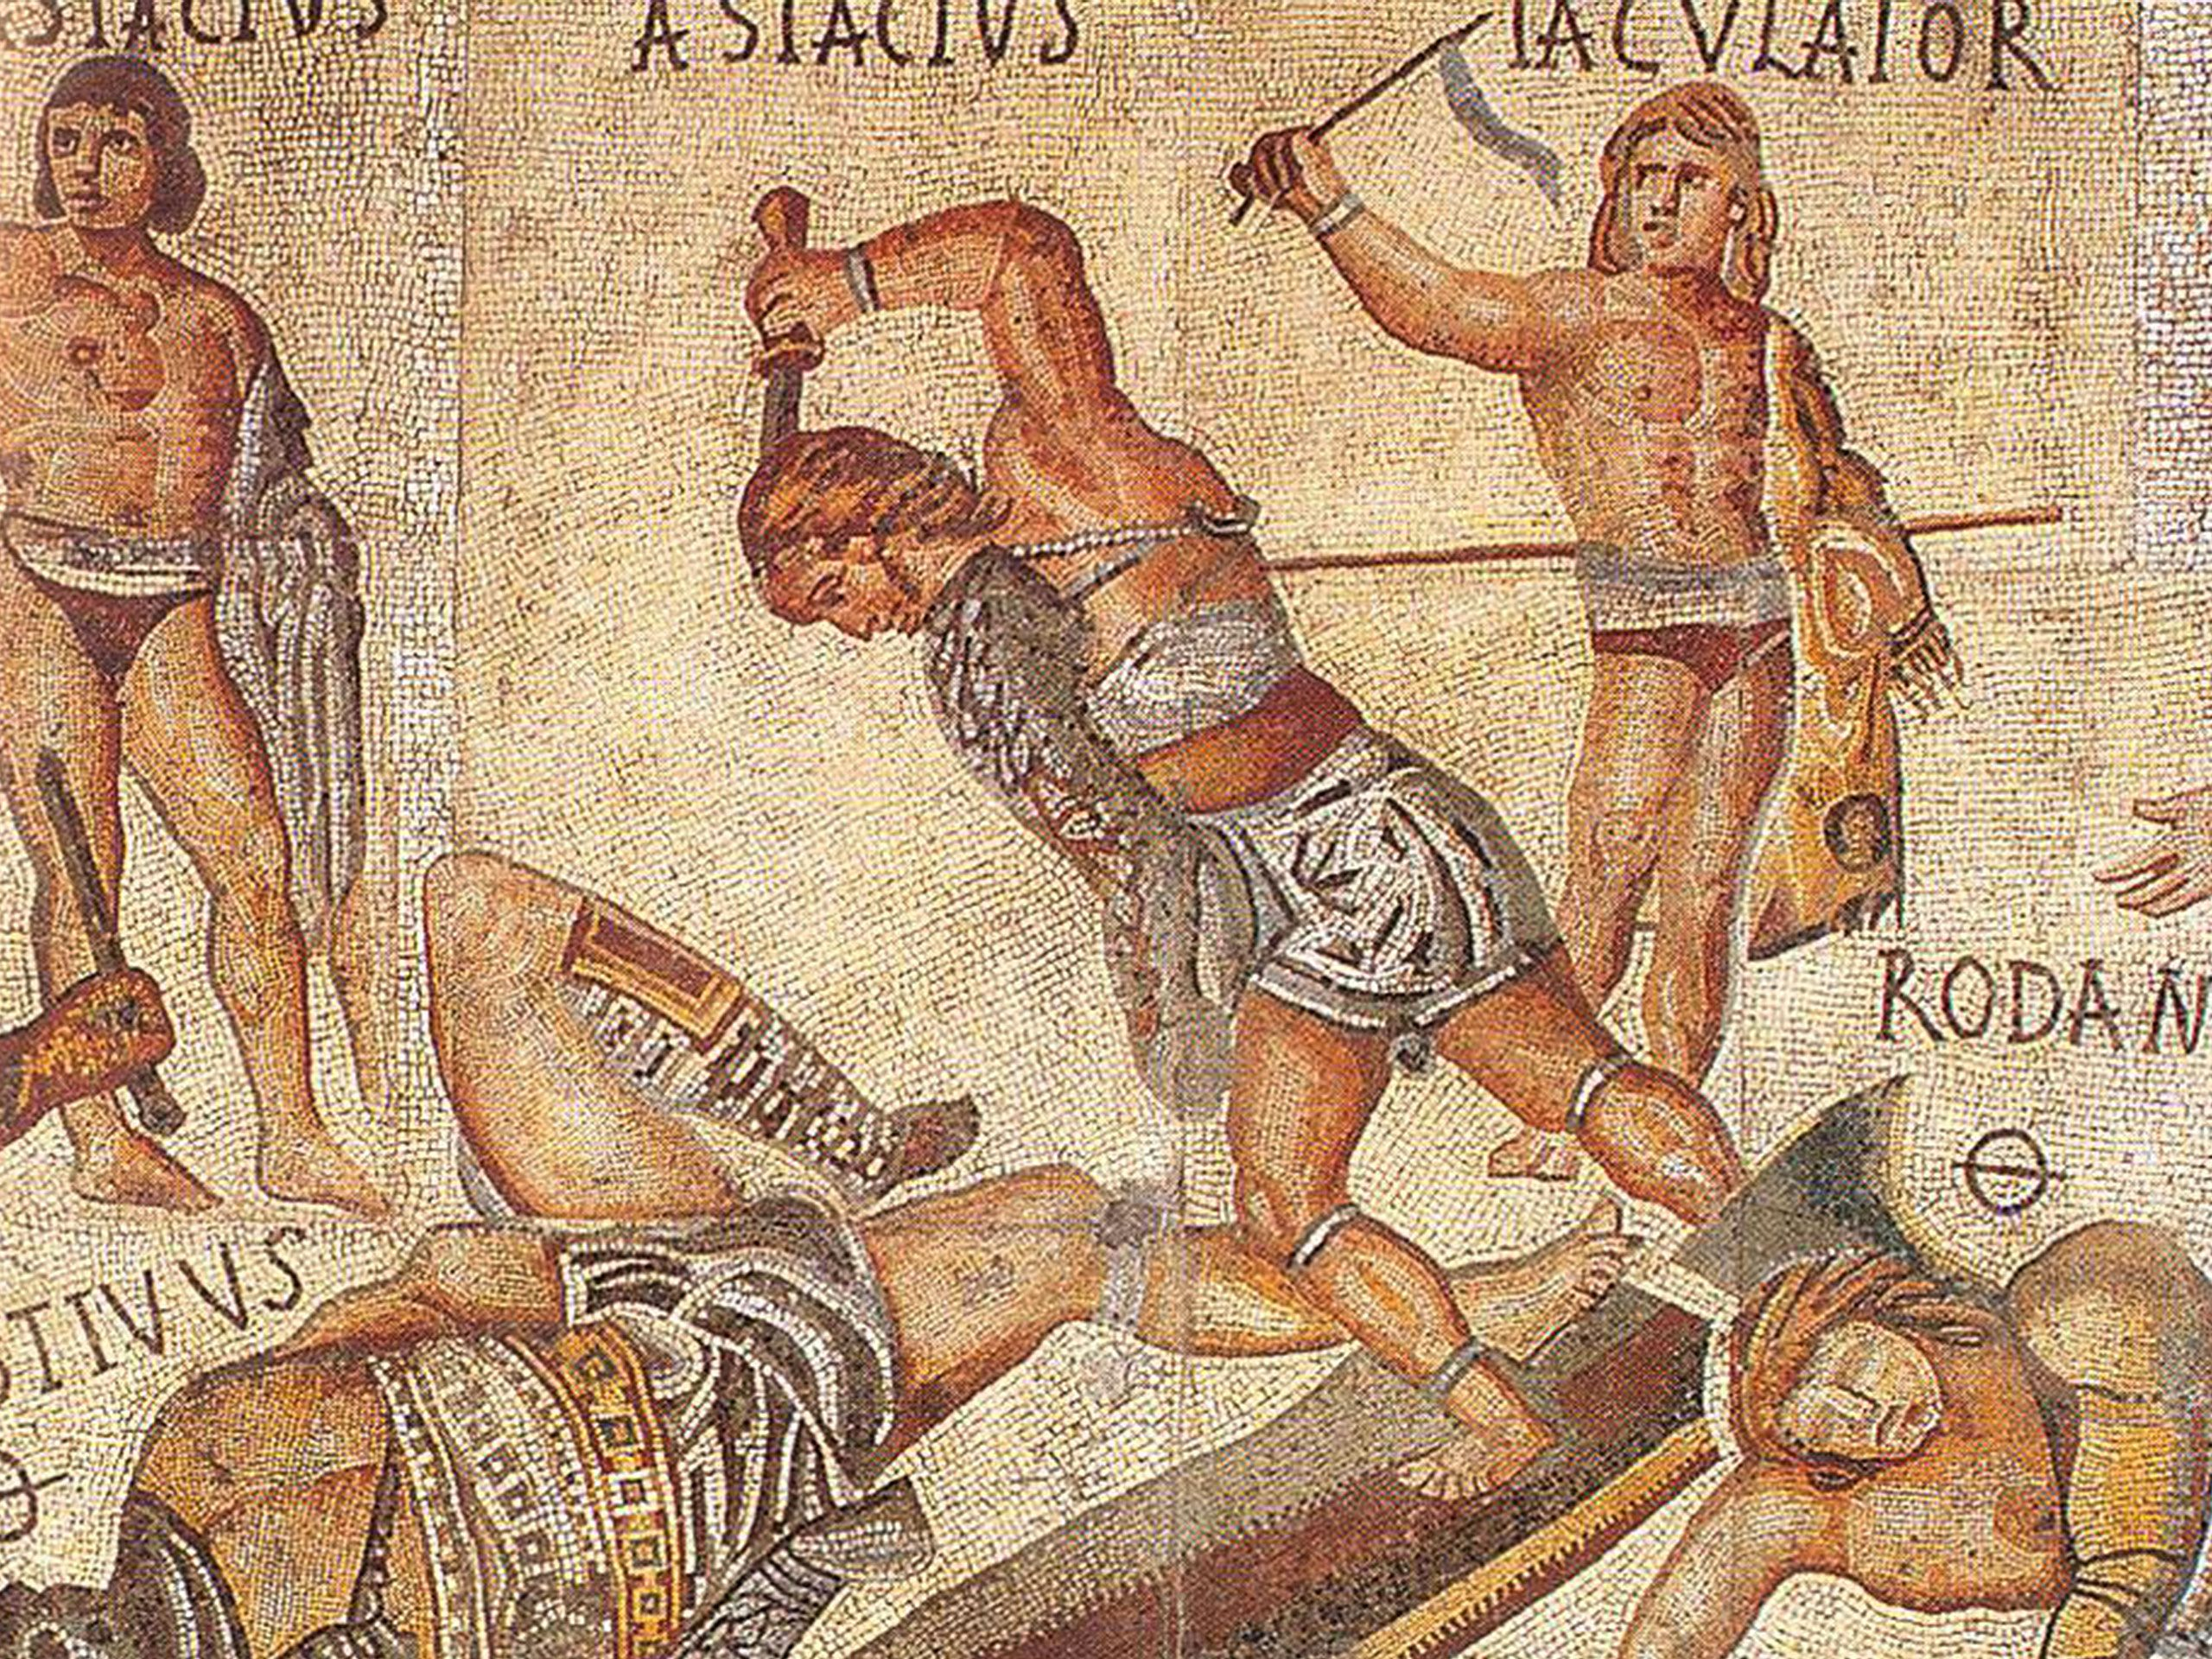 Second century AD mosaic of famed gladiators that filled the arena with blood